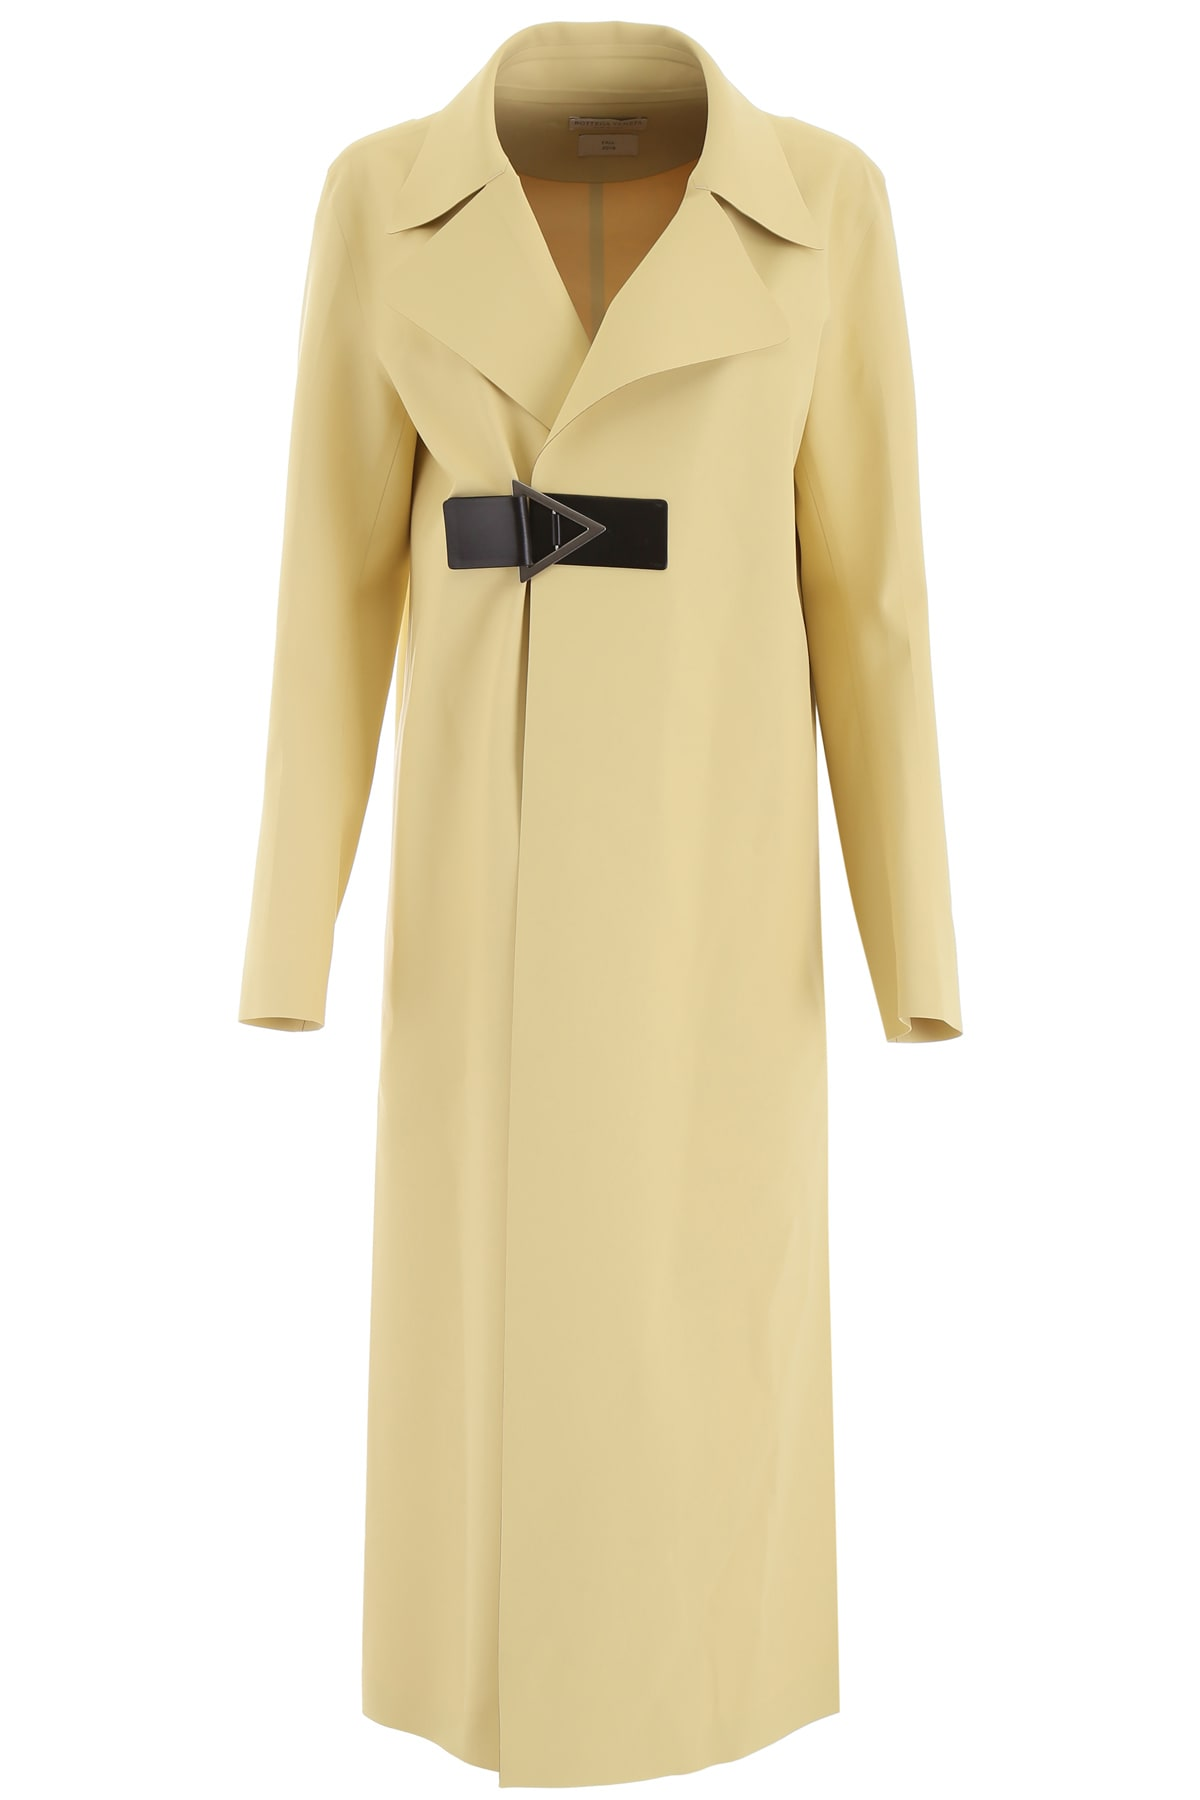 Bottega Veneta Satin Rubber Trench Coat